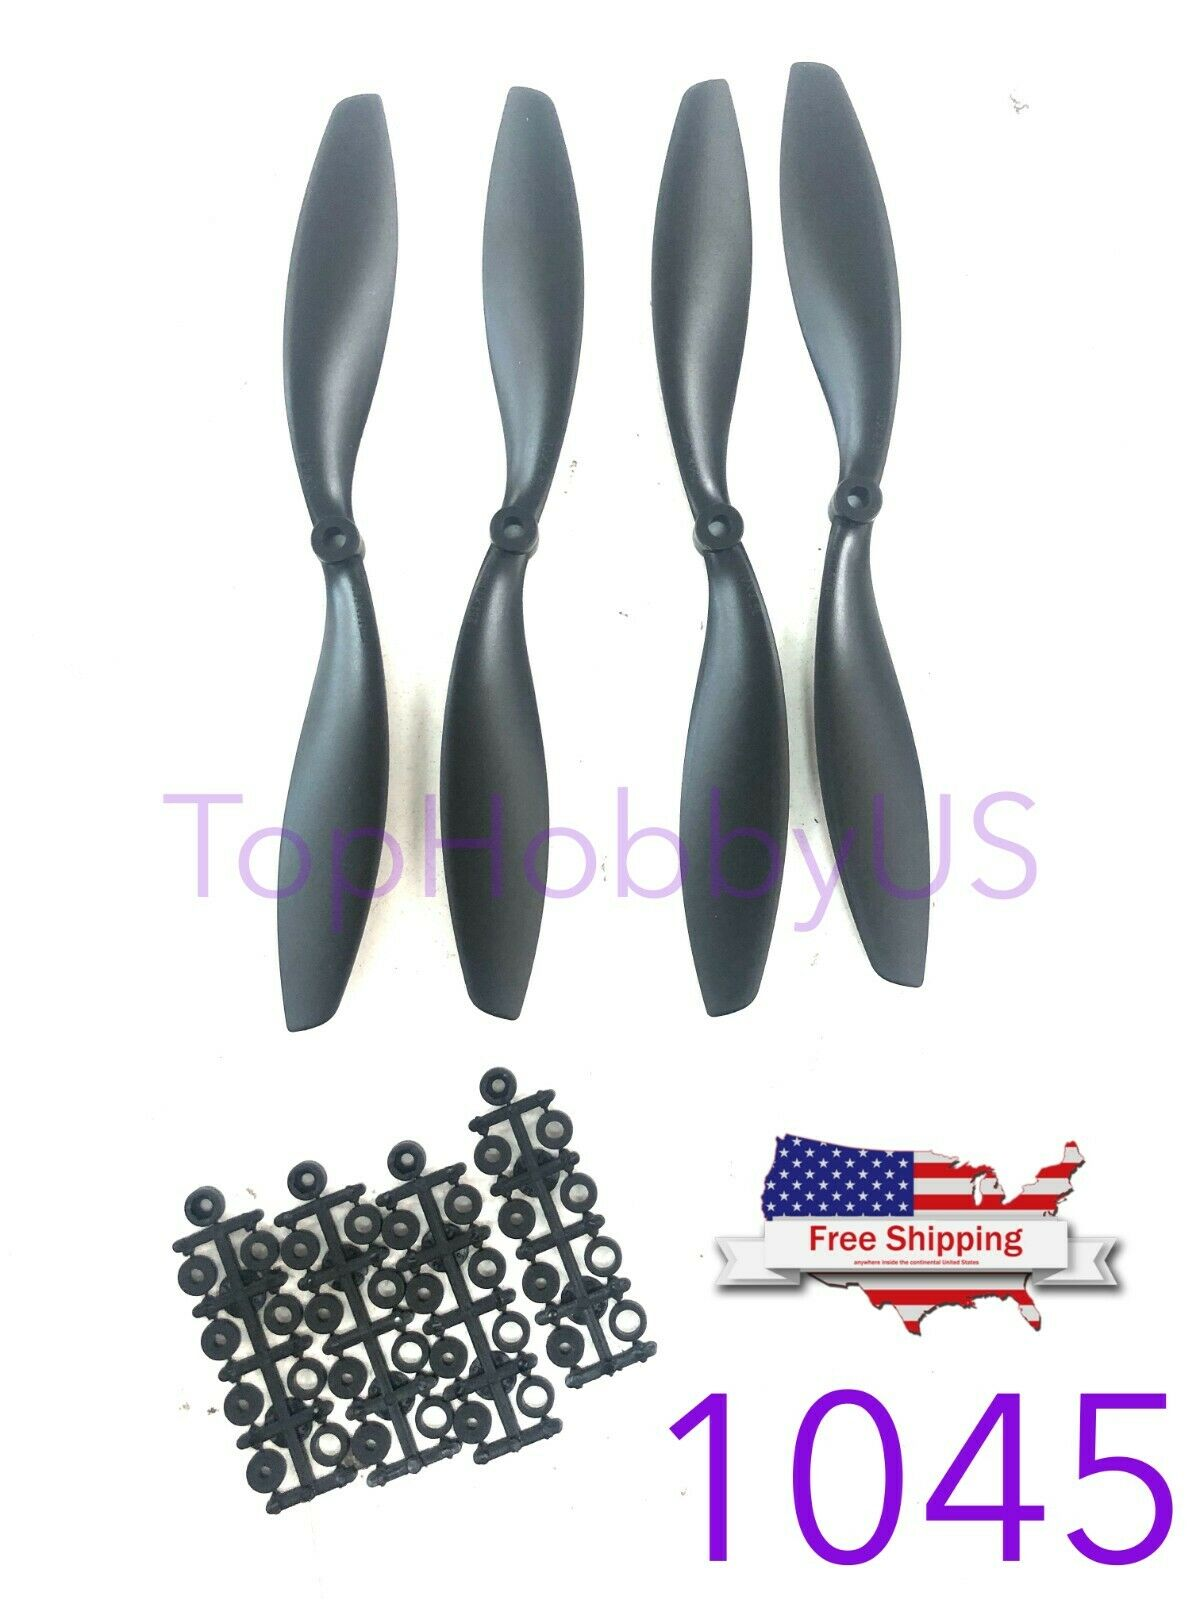 4 Pair 10x4.5 1045 Propeller Prop CW CCW for RC Multi-Copter Quad